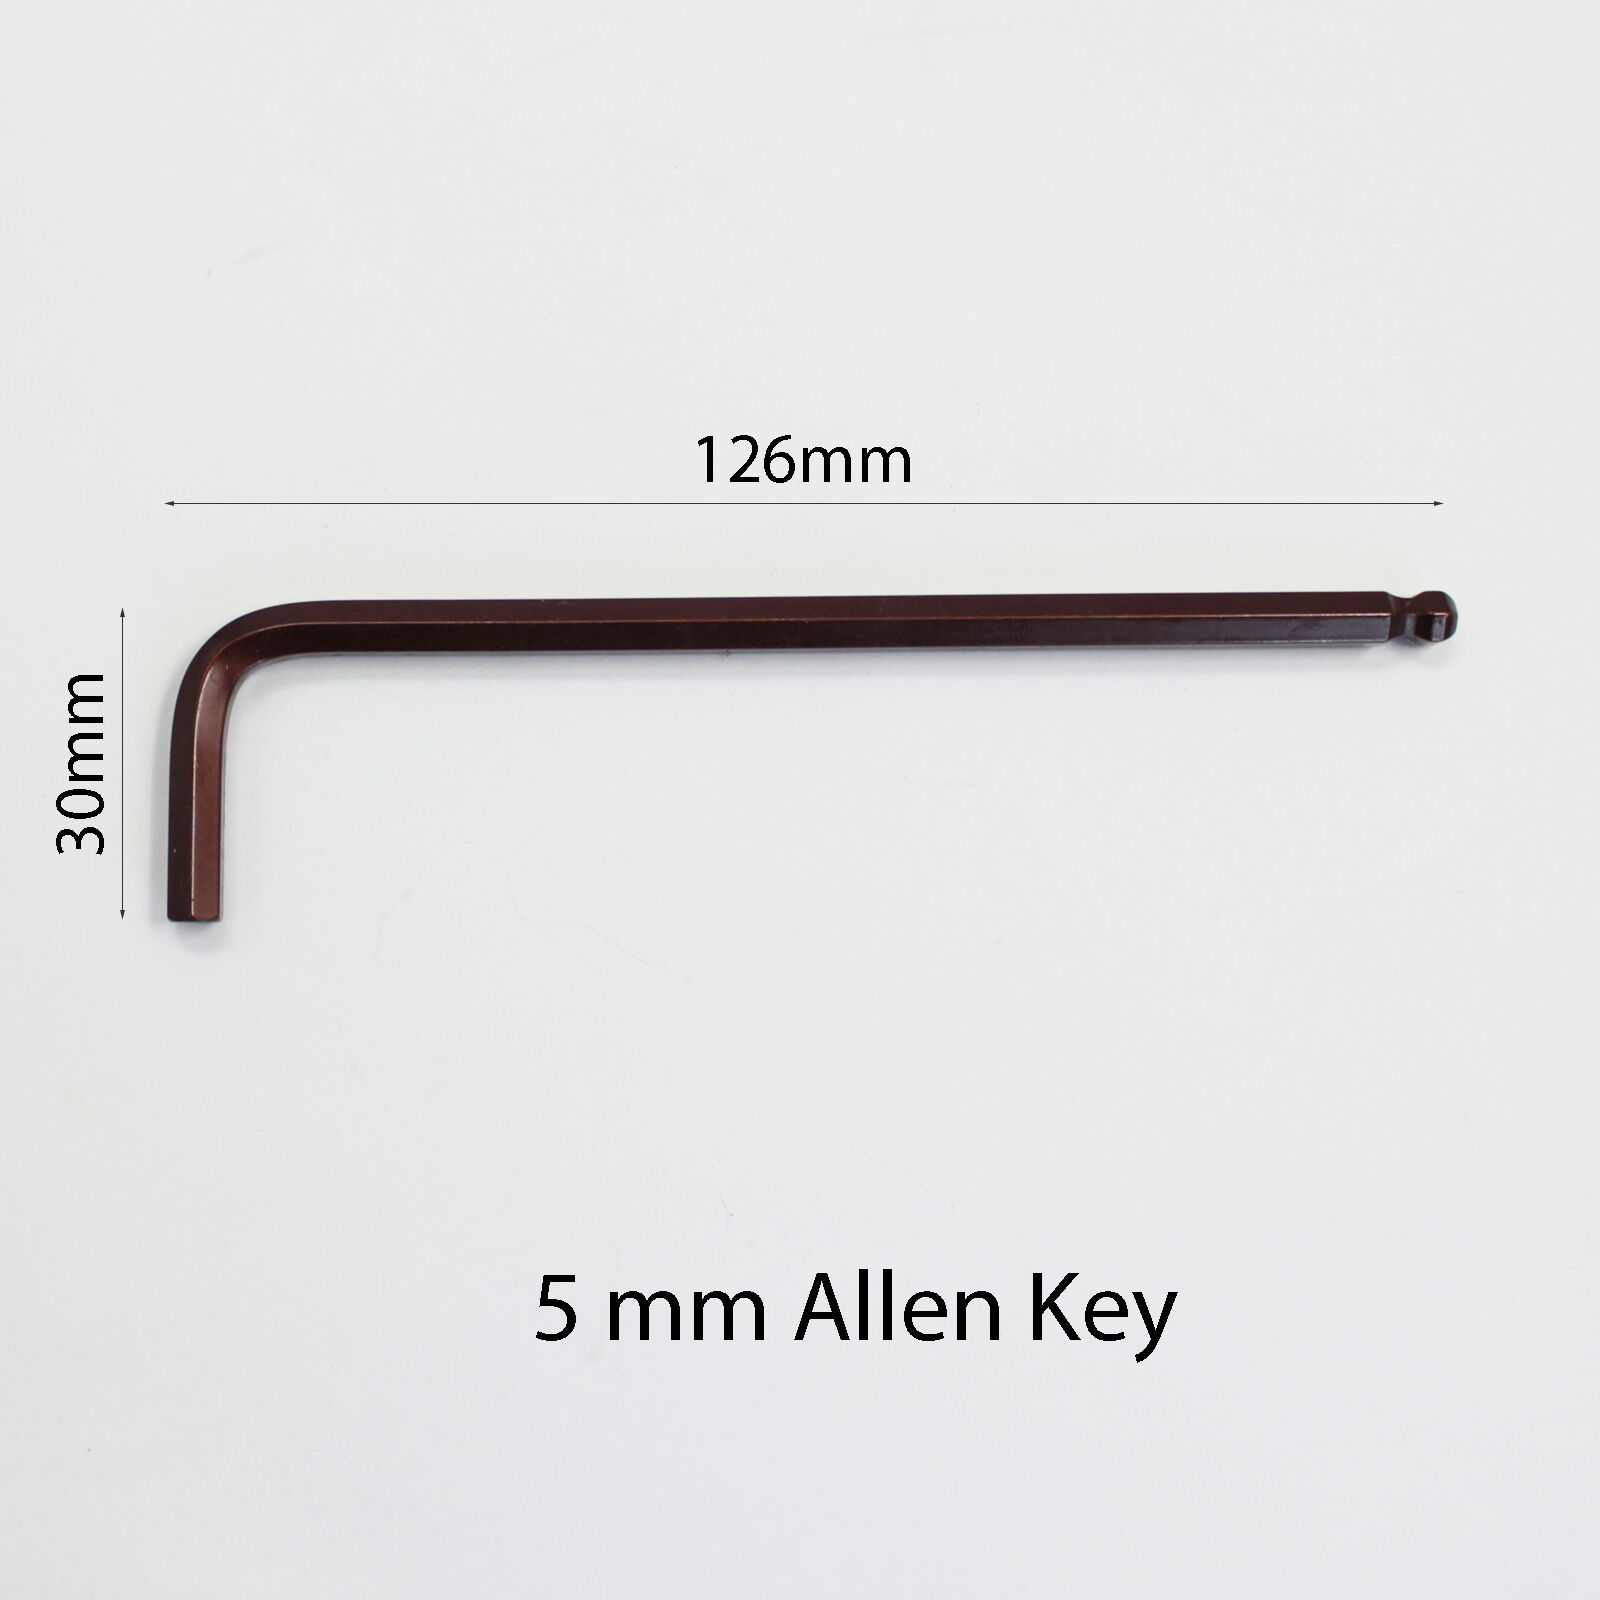 6mm QUALITY ALLEN BALL END LONG STEEL ARM HEX KEY KIT WRENCH METRIC 5mm 4mm